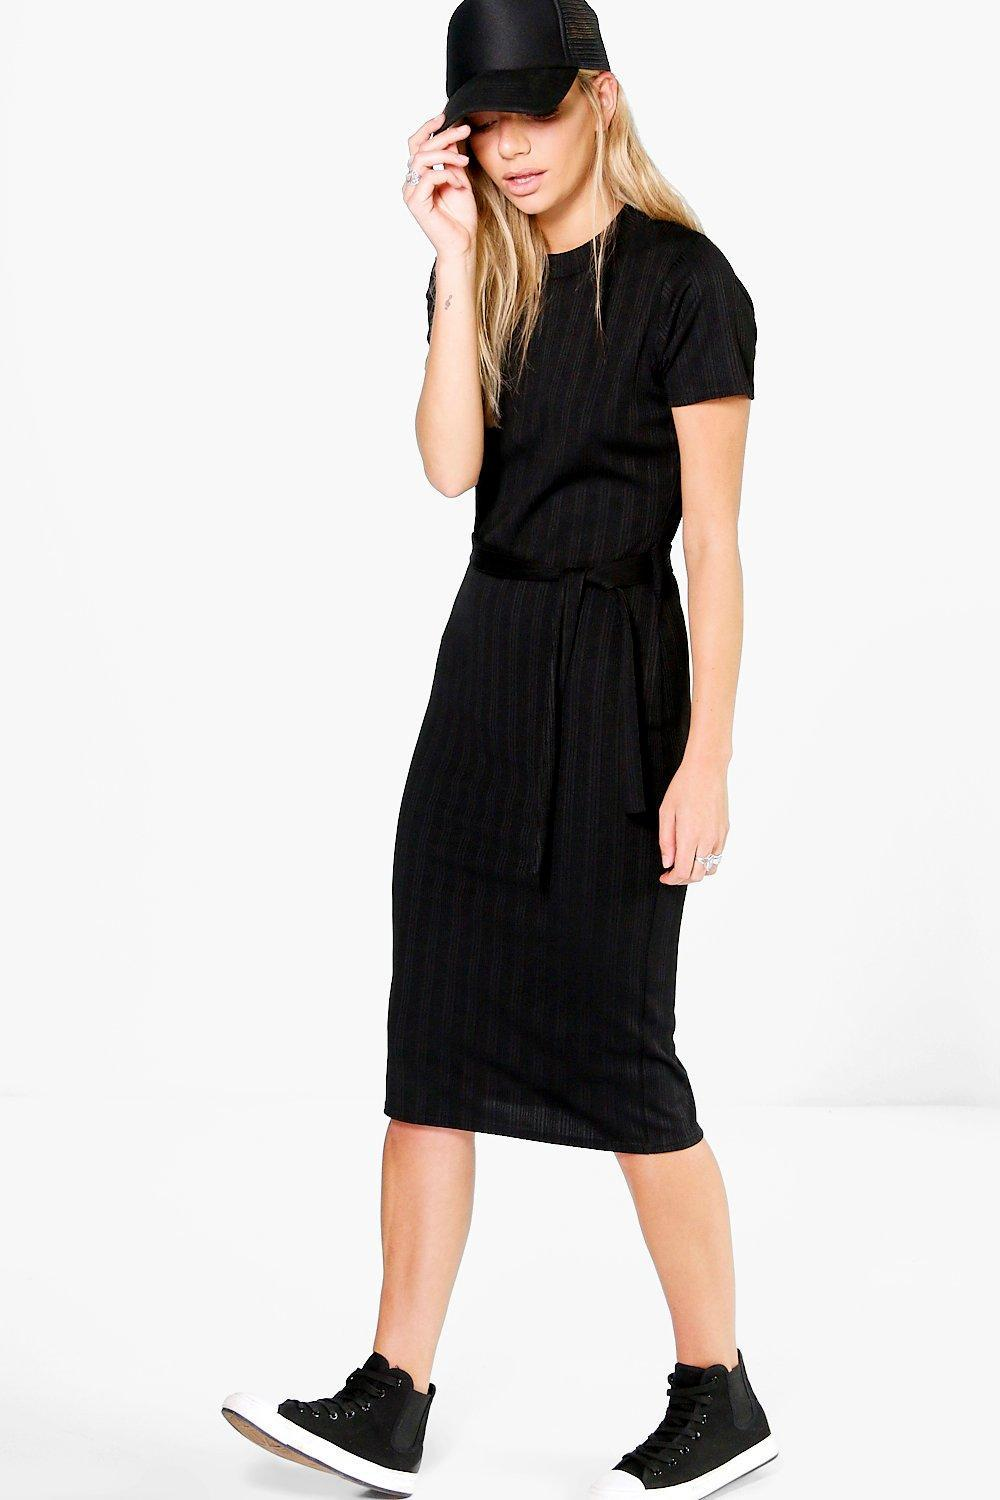 Rib Tie Waist Midi Dress Black - length: below the knee; fit: tight; pattern: plain; style: bodycon; predominant colour: black; occasions: evening; fibres: polyester/polyamide - stretch; neckline: crew; sleeve length: short sleeve; sleeve style: standard; texture group: jersey - clingy; pattern type: fabric; season: a/w 2016; wardrobe: event